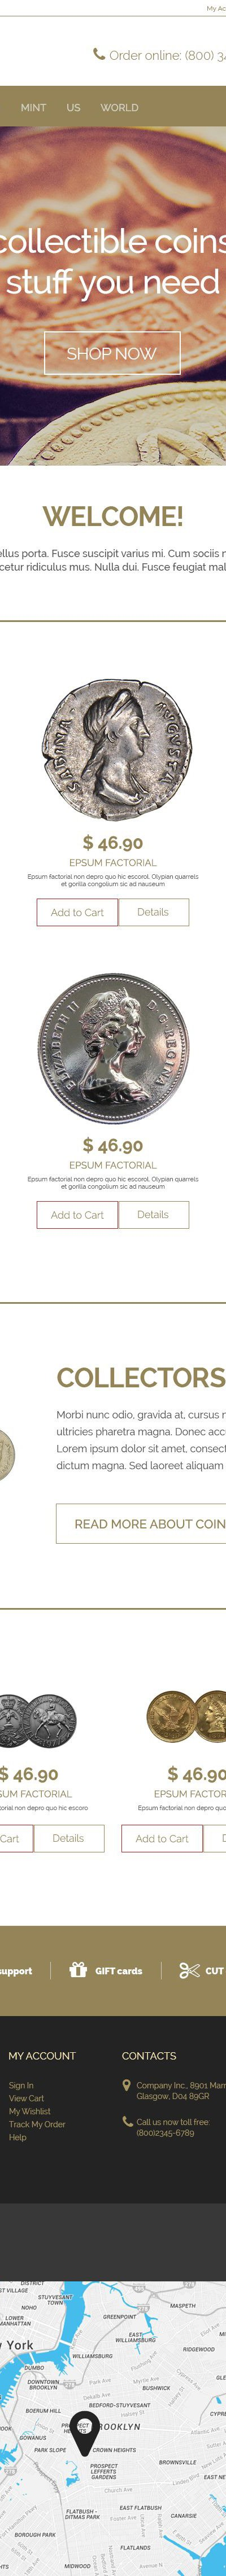 Collectible Coins Magento Theme